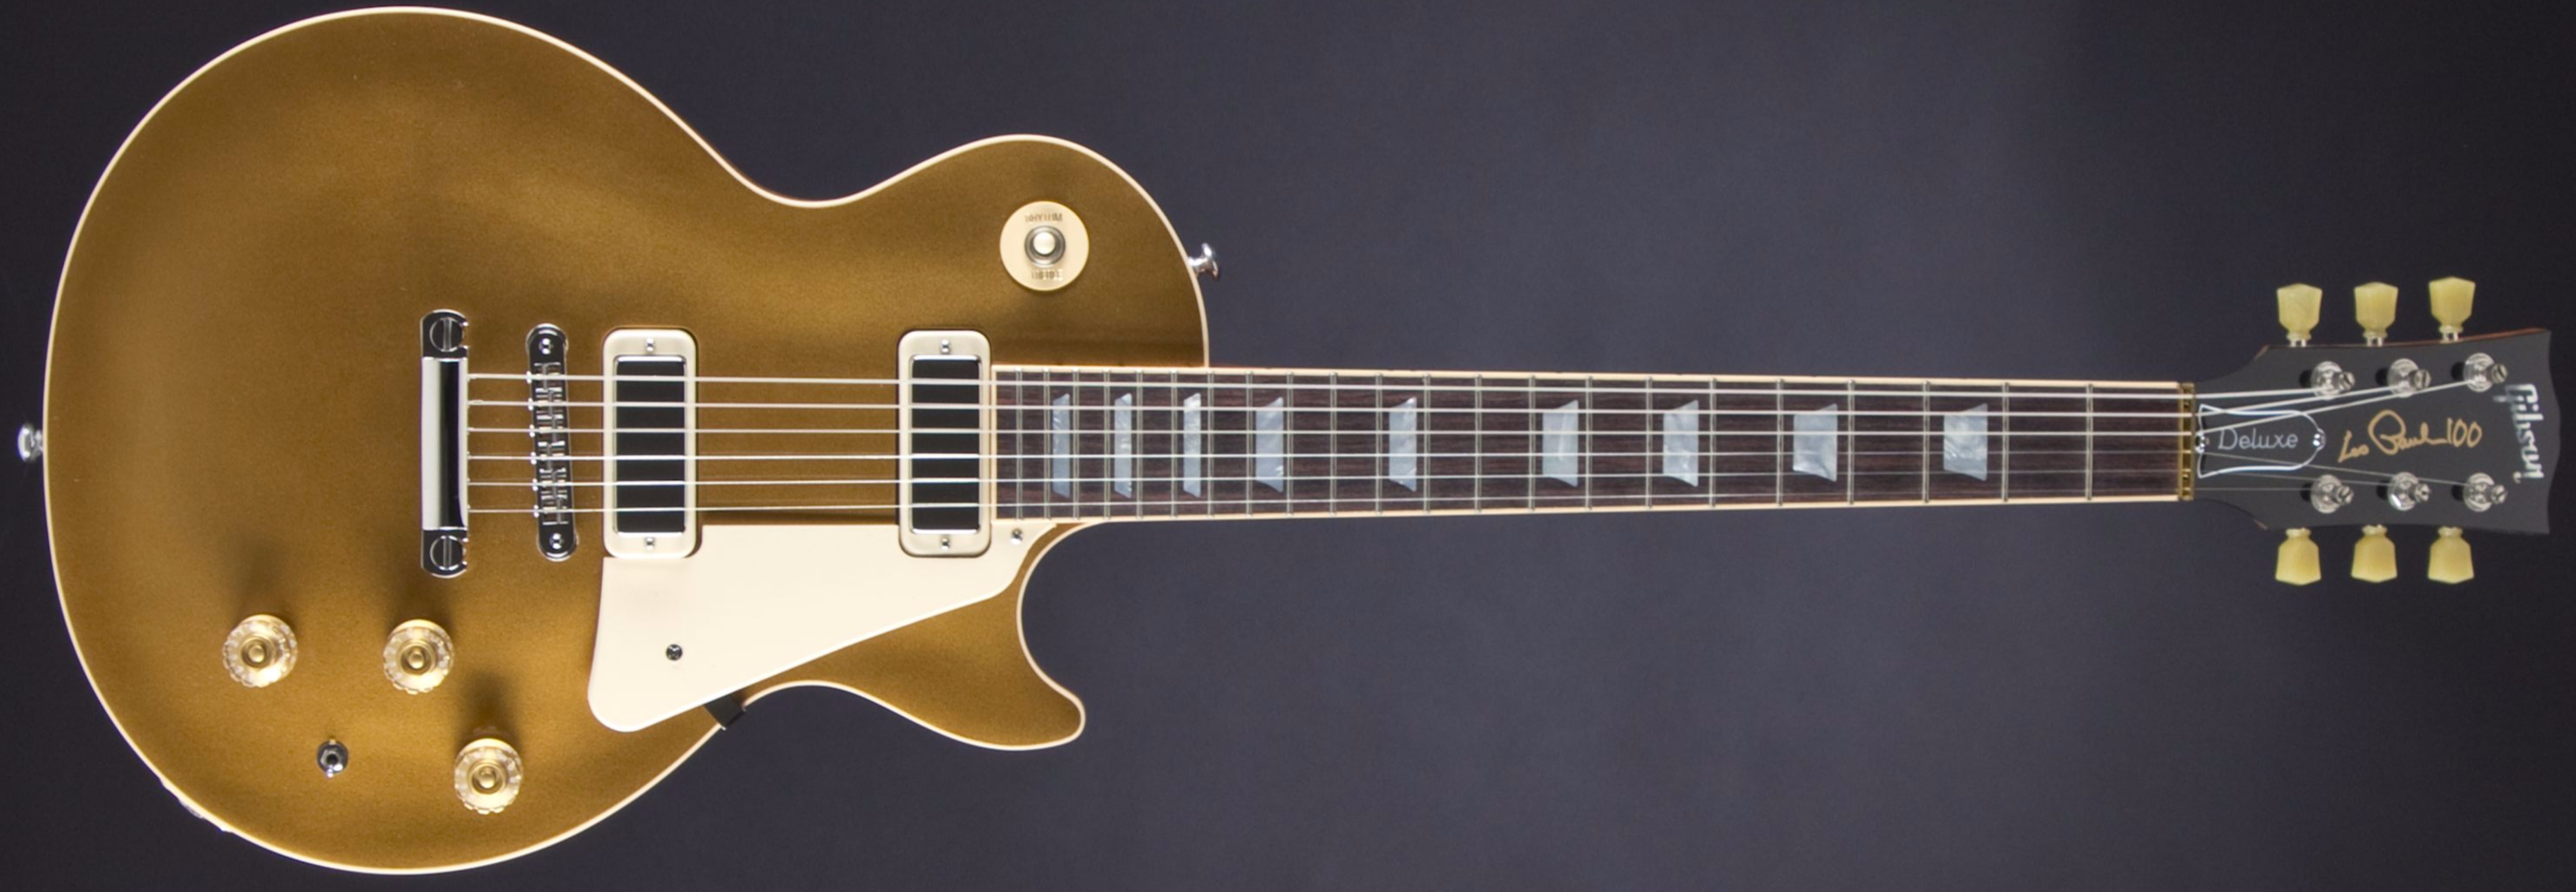 GIBSON Les Paul Deluxe Metallic Gold Top